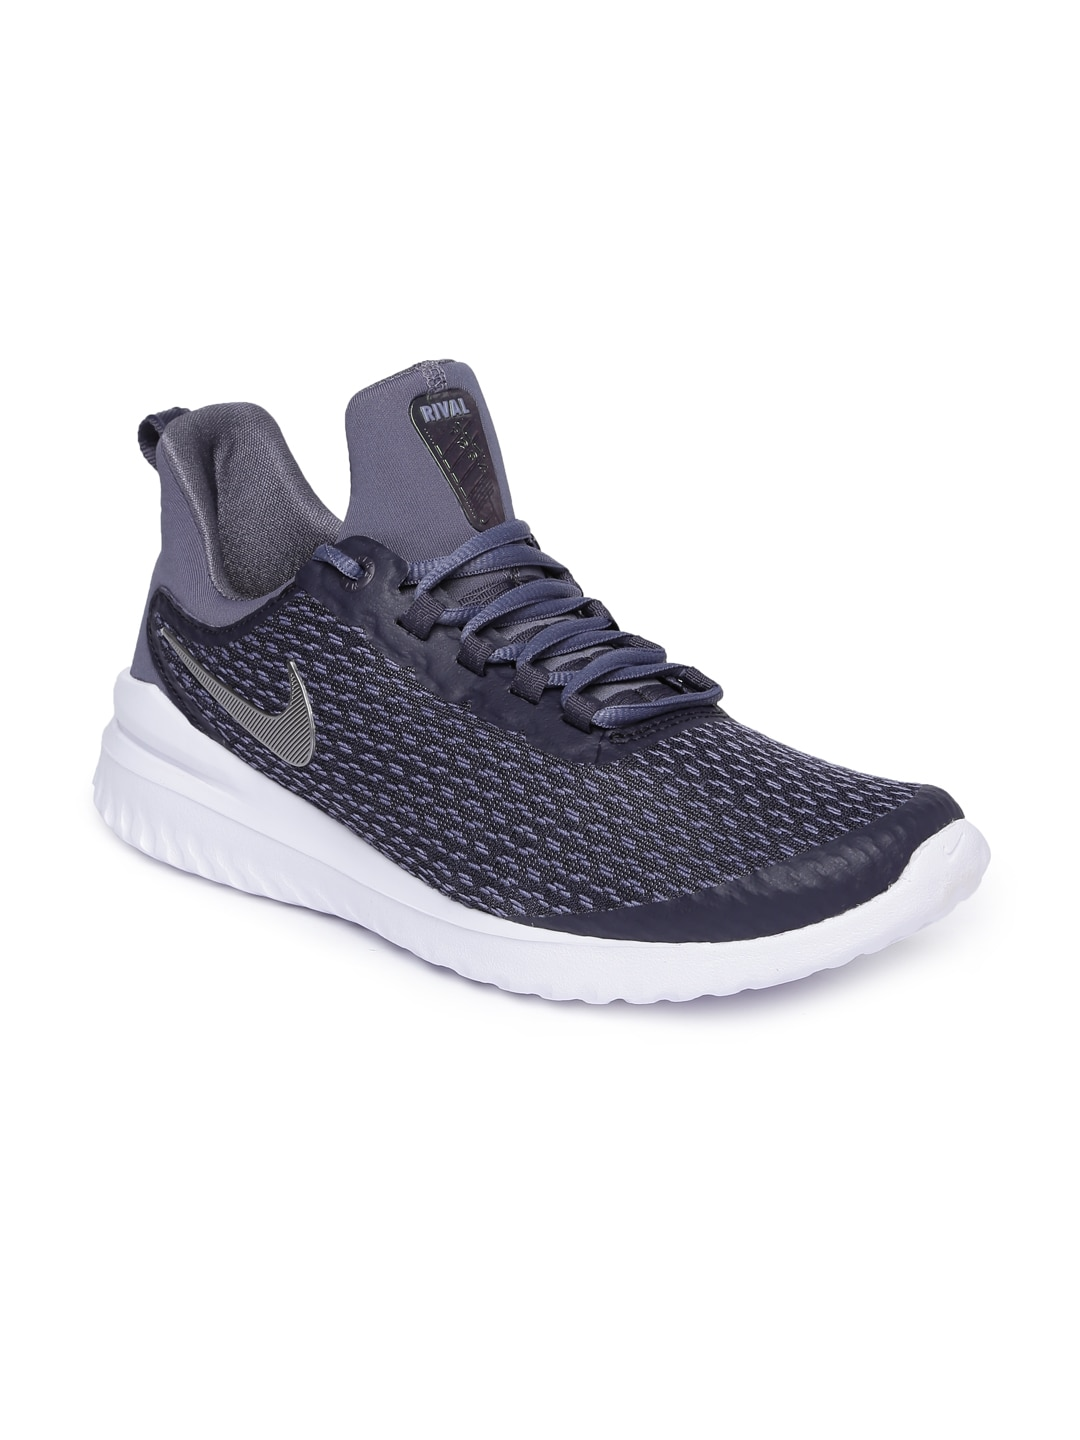 2f33aa453dcb0 Nike Sport Shoe - Buy Nike Sport Shoes At Best Price Online